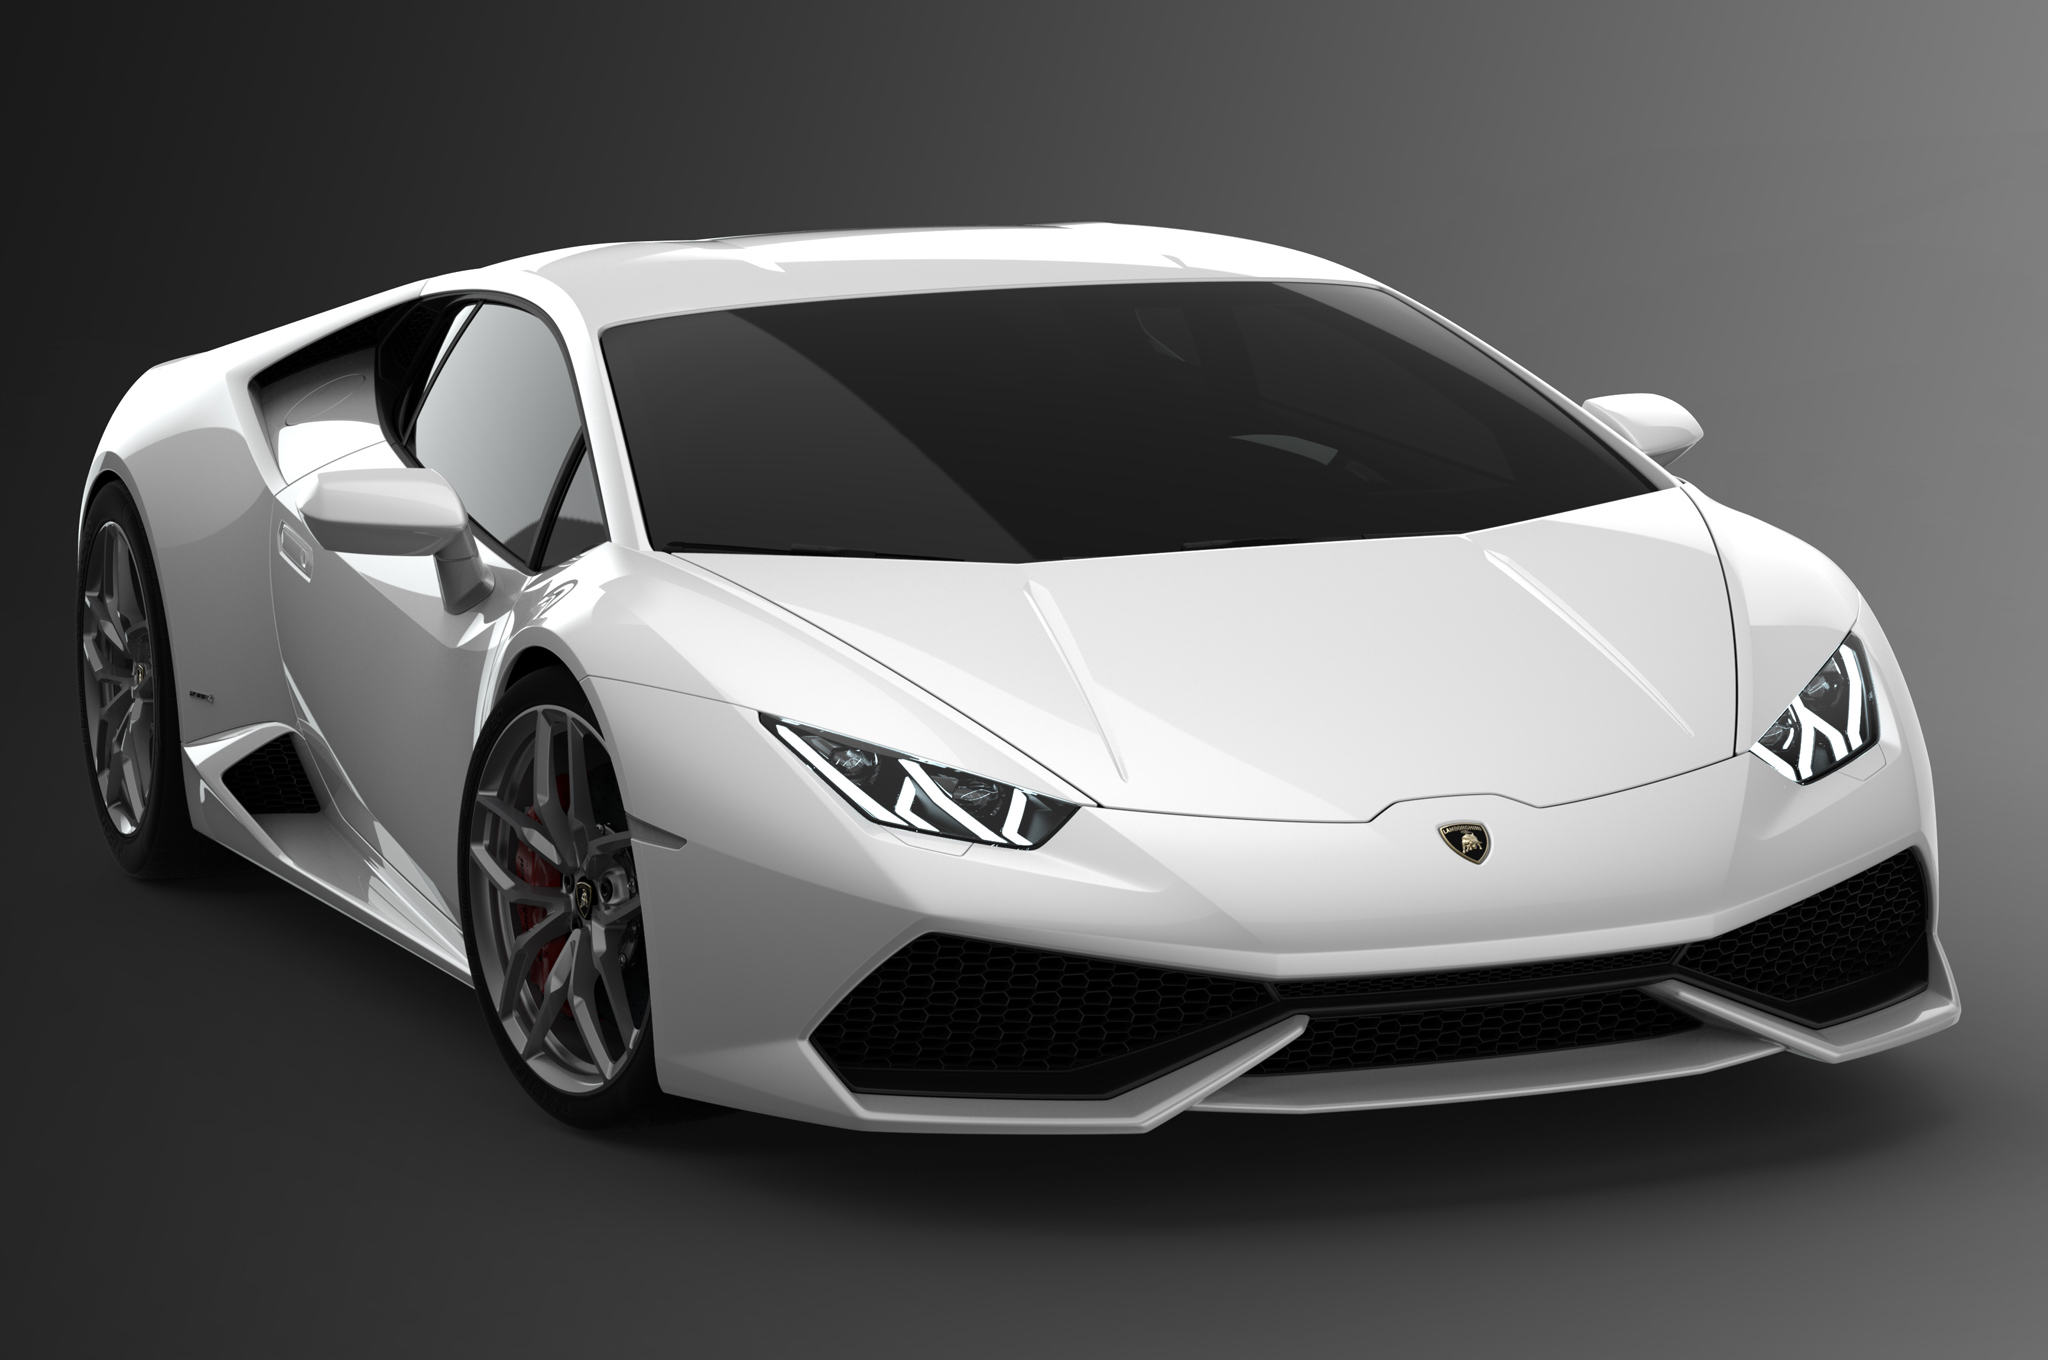 White Lamborghini Super Car 243.51 Kb